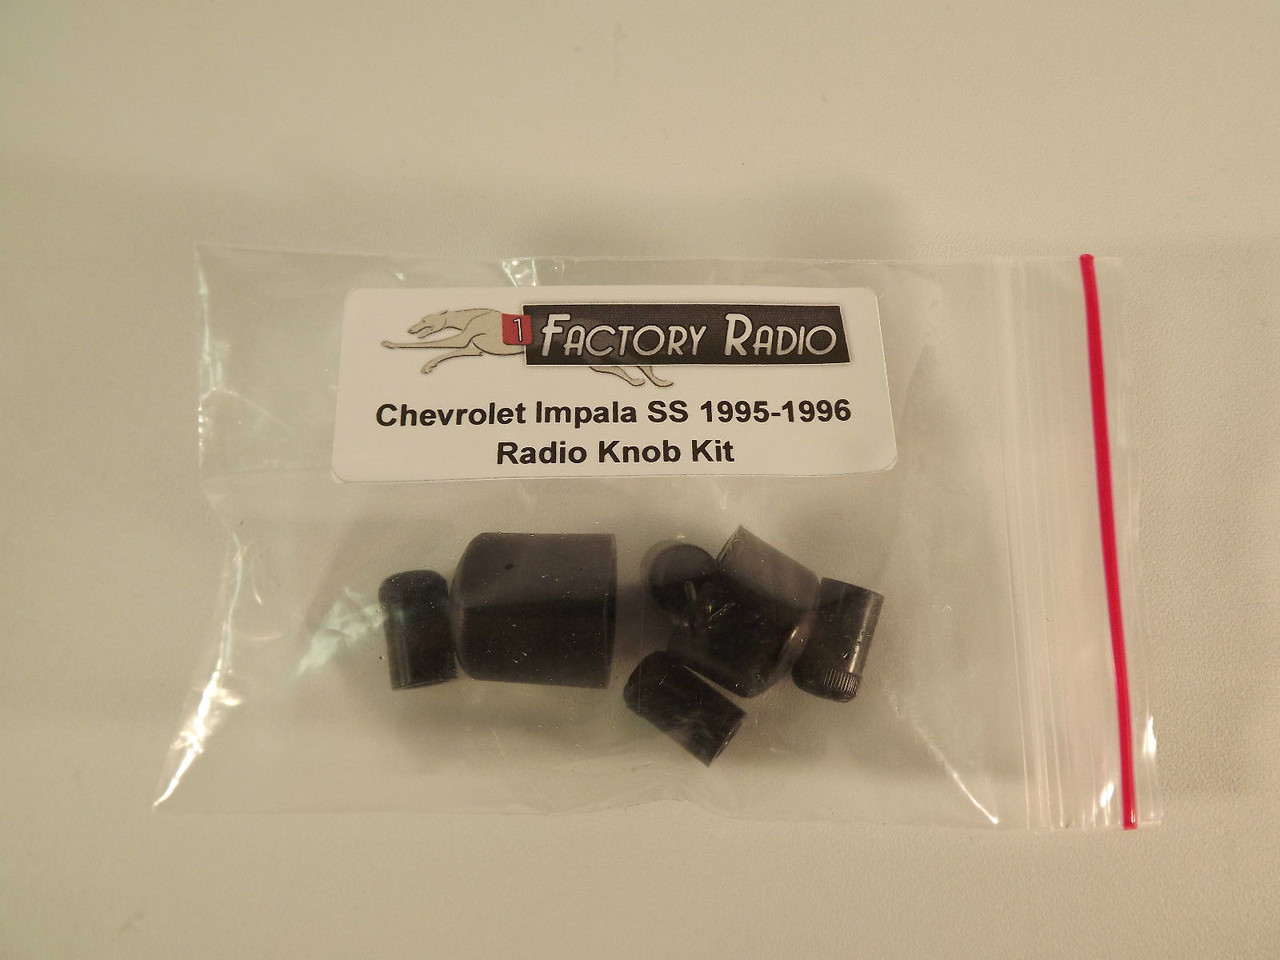 radio knob kit for chevrolet impala ss 1995 1996 newly Delco Electronics Radio d3d71ba2asa5oz cloudfront net 12015082 images chevroletimpalassr 06414 1factoryradio yes chev 2